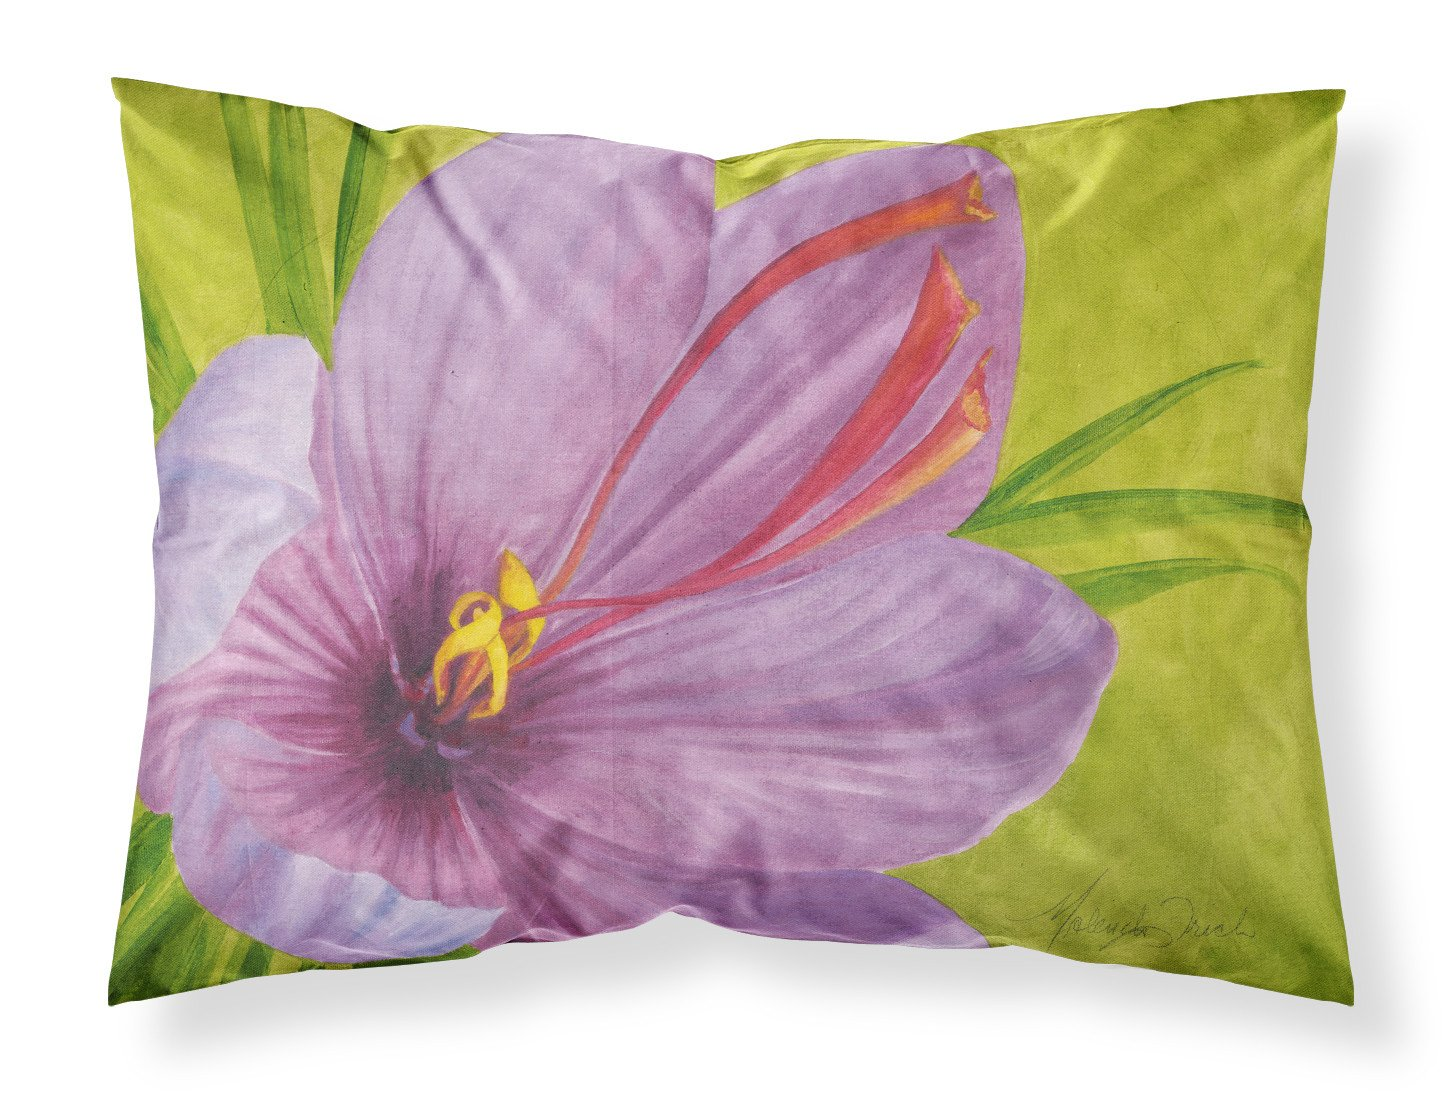 Floral by Malenda Trick Fabric Standard Pillowcase TMTR0227PILLOWCASE by Caroline's Treasures